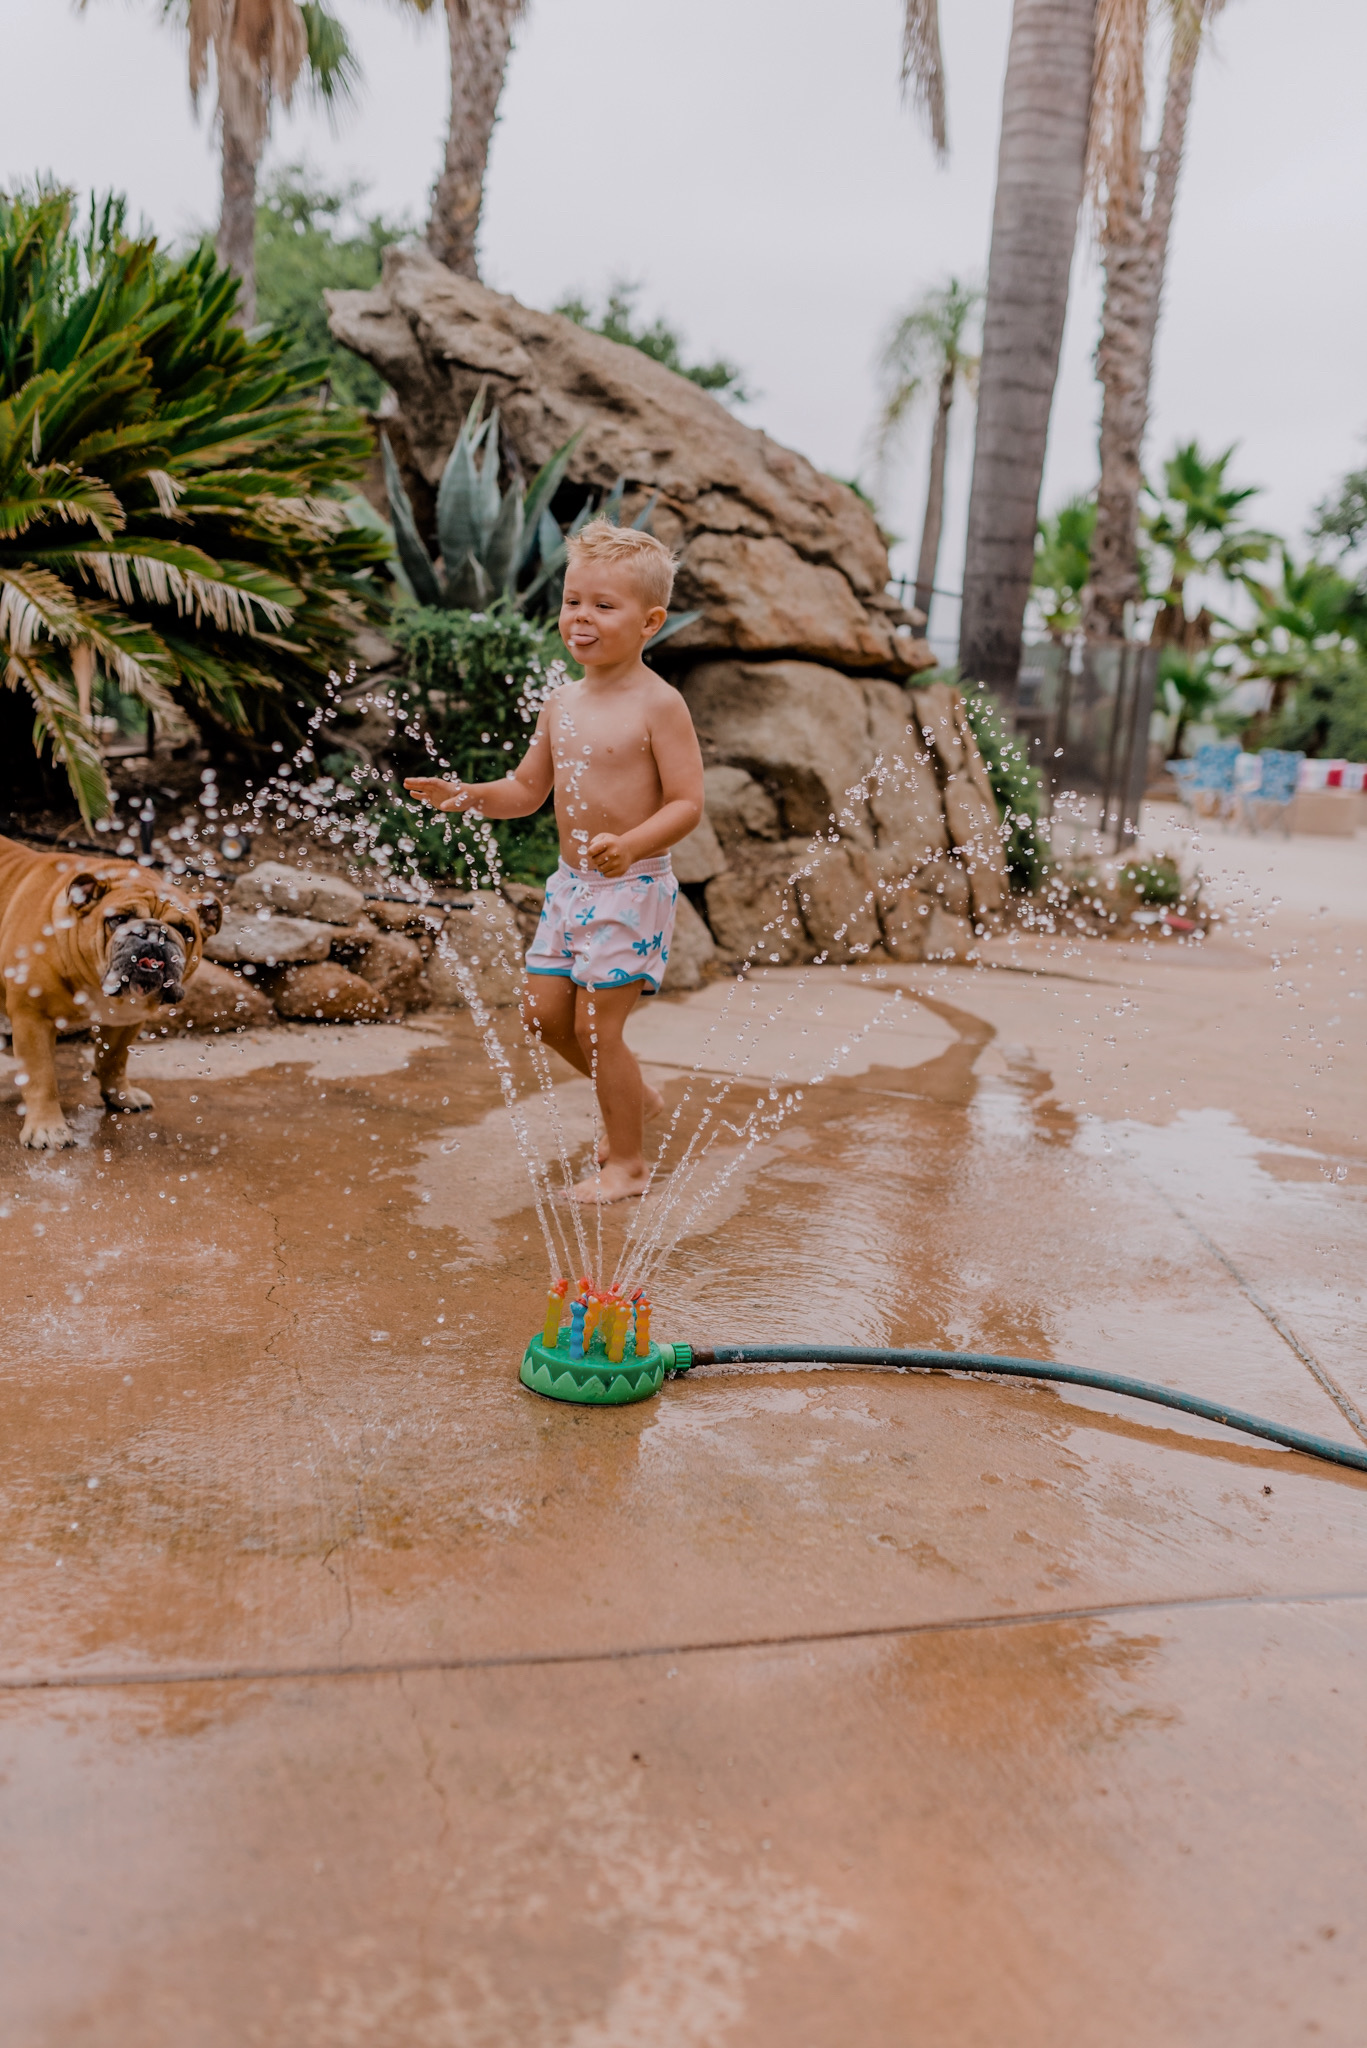 18 SUPER FUN OUTDOOR ACTIVITIES FOR YOUR FAMILY THIS SUMMER featured by top San Diego lifestyle blogger, Navy Grace | Family Outdoor Activities by popular San Diego lifestyle blog, Navy Grace: image of a young boy playing with a Melissa & Doug Splash Patrol Sprinkler.